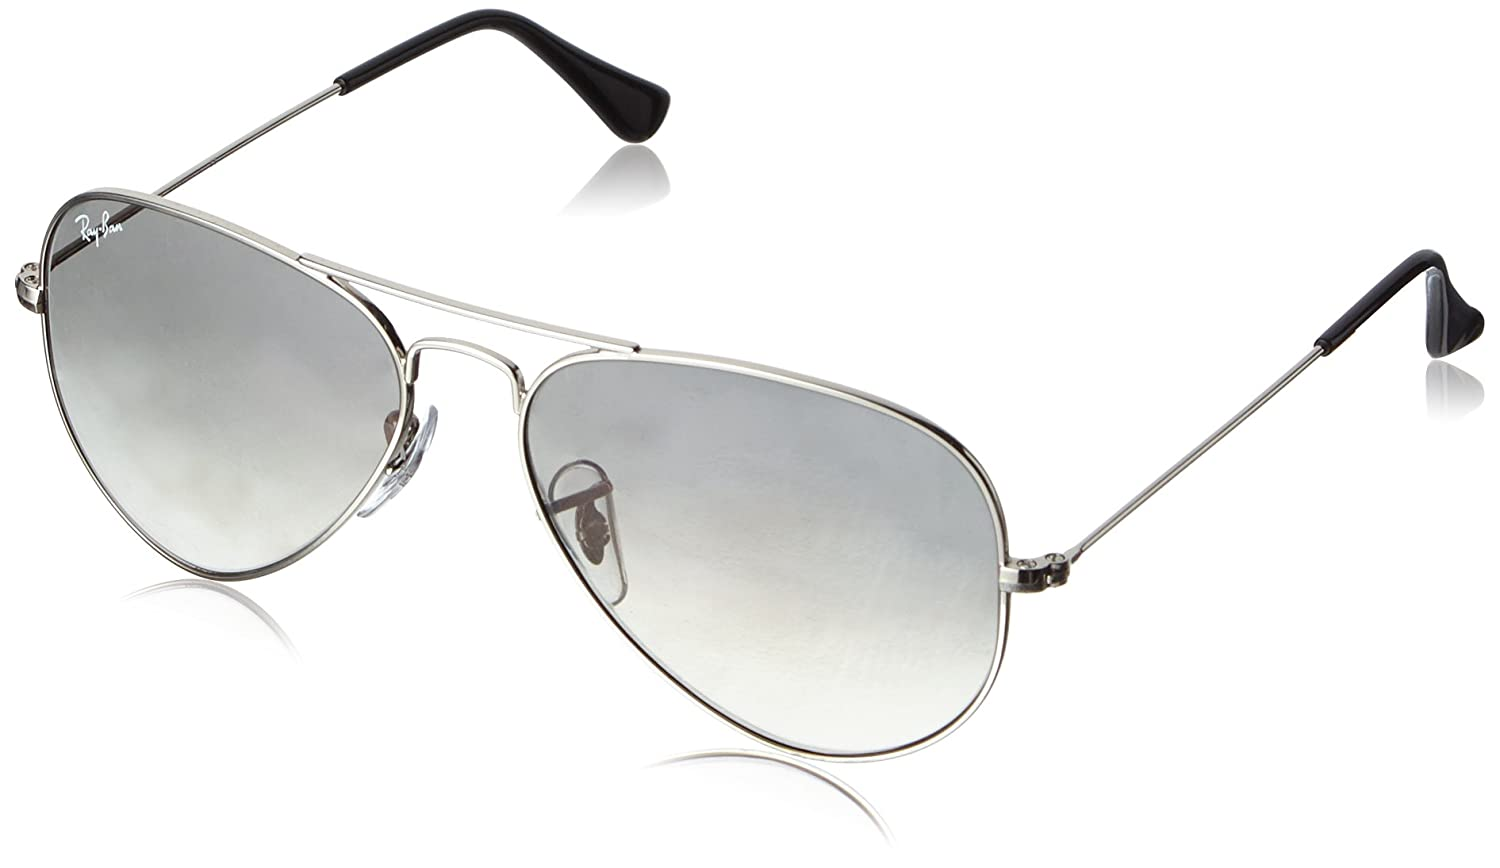 ray ban aviator 3025  amazon: ray ban 0rb3025 aviator metal non polarized sunglasses, silver/ crystal grey gradient, 55mm: ray ban: clothing